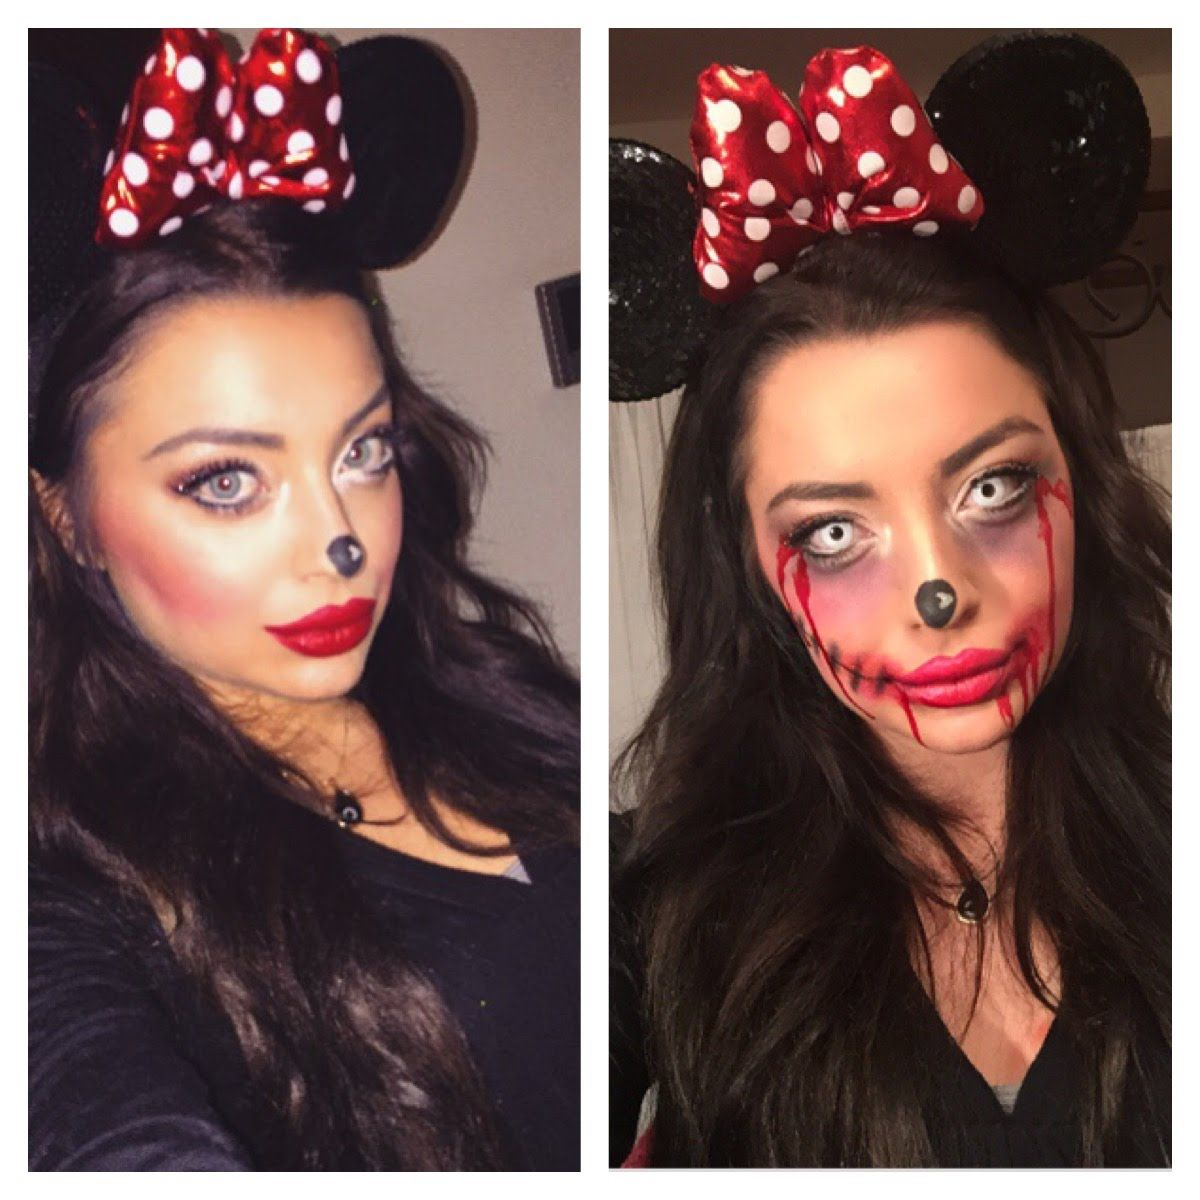 minnie mouse to zombie minnie makeup halloween youtube halloween ideas. Black Bedroom Furniture Sets. Home Design Ideas